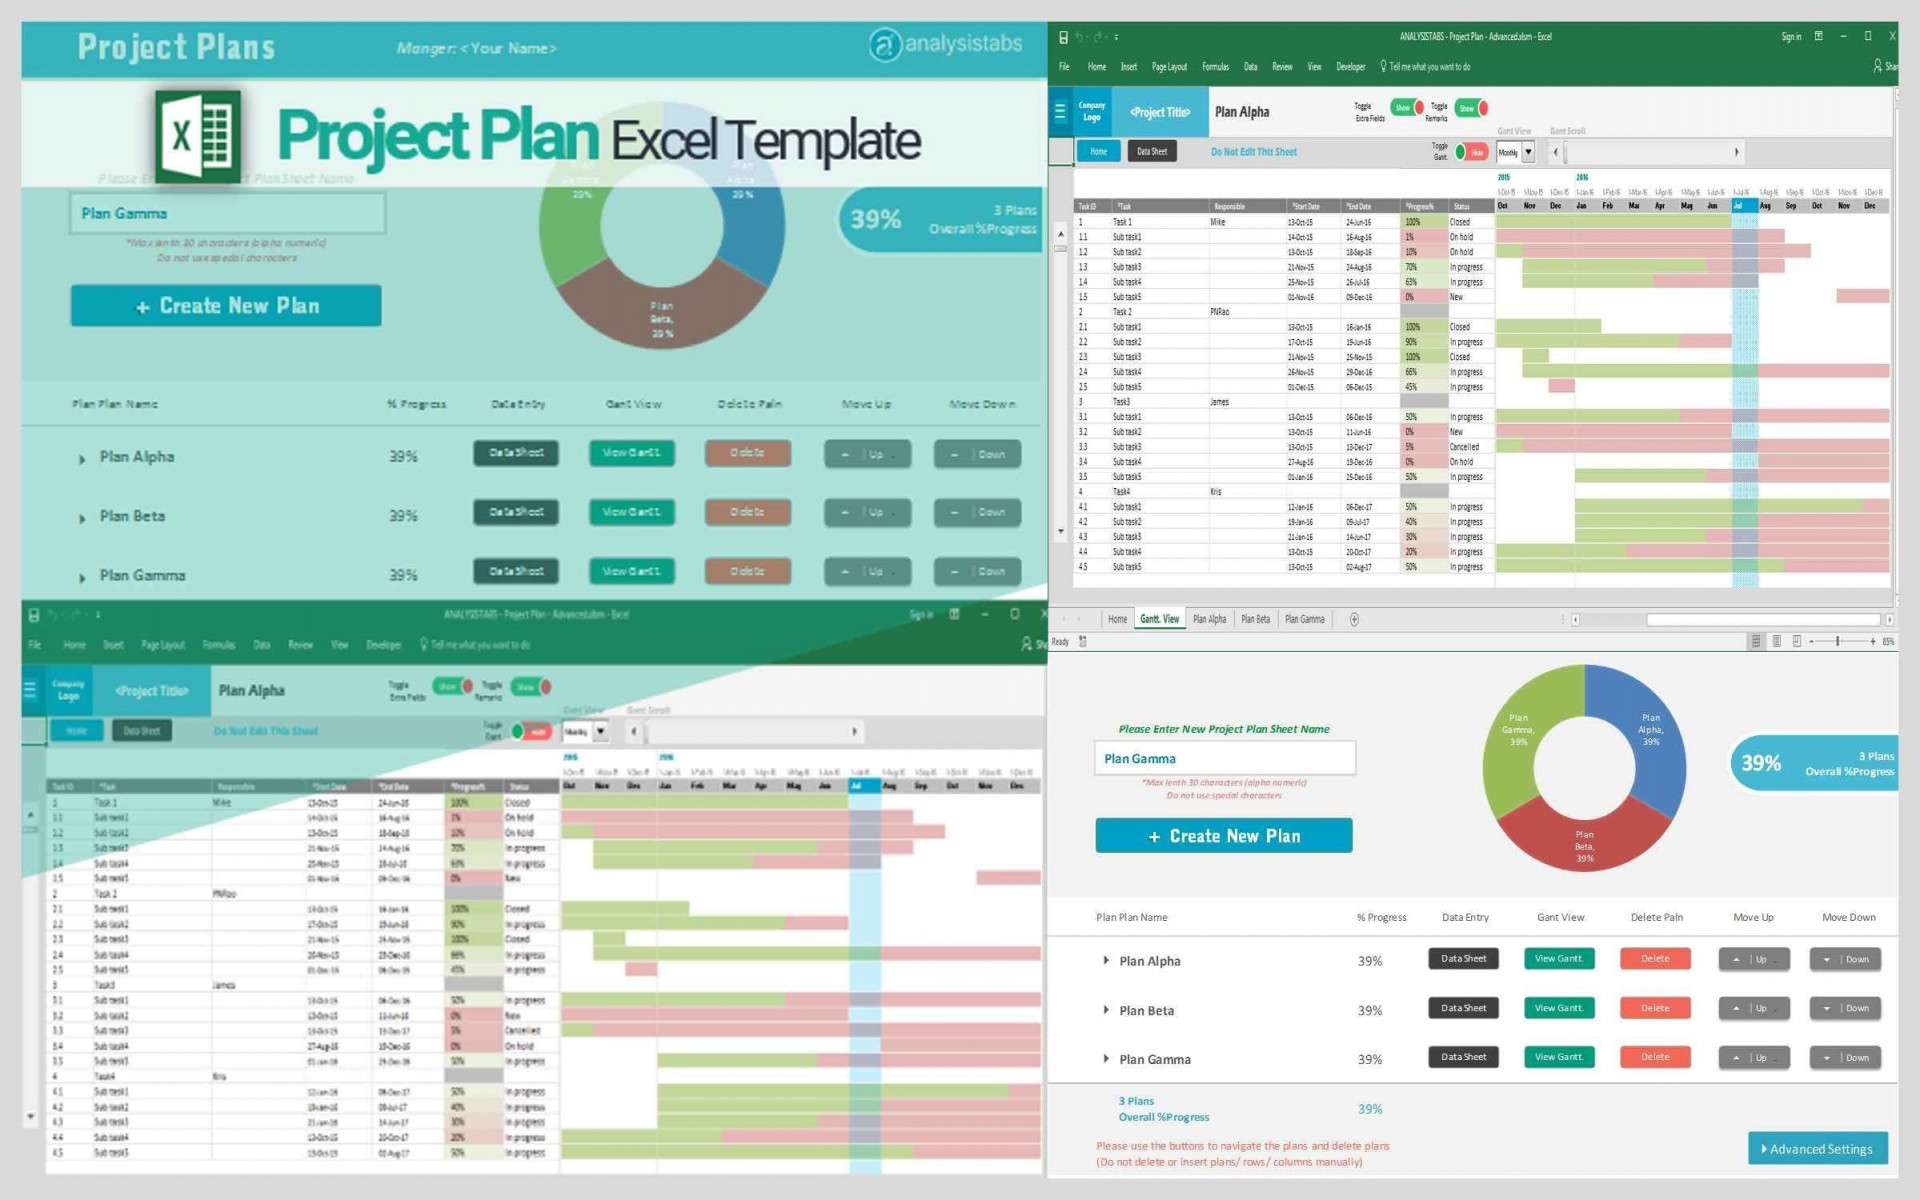 001 Formidable Excel Project Management Template Highest Quality  With Dependencie Gantt Schedule Creation Microsoft Office1920